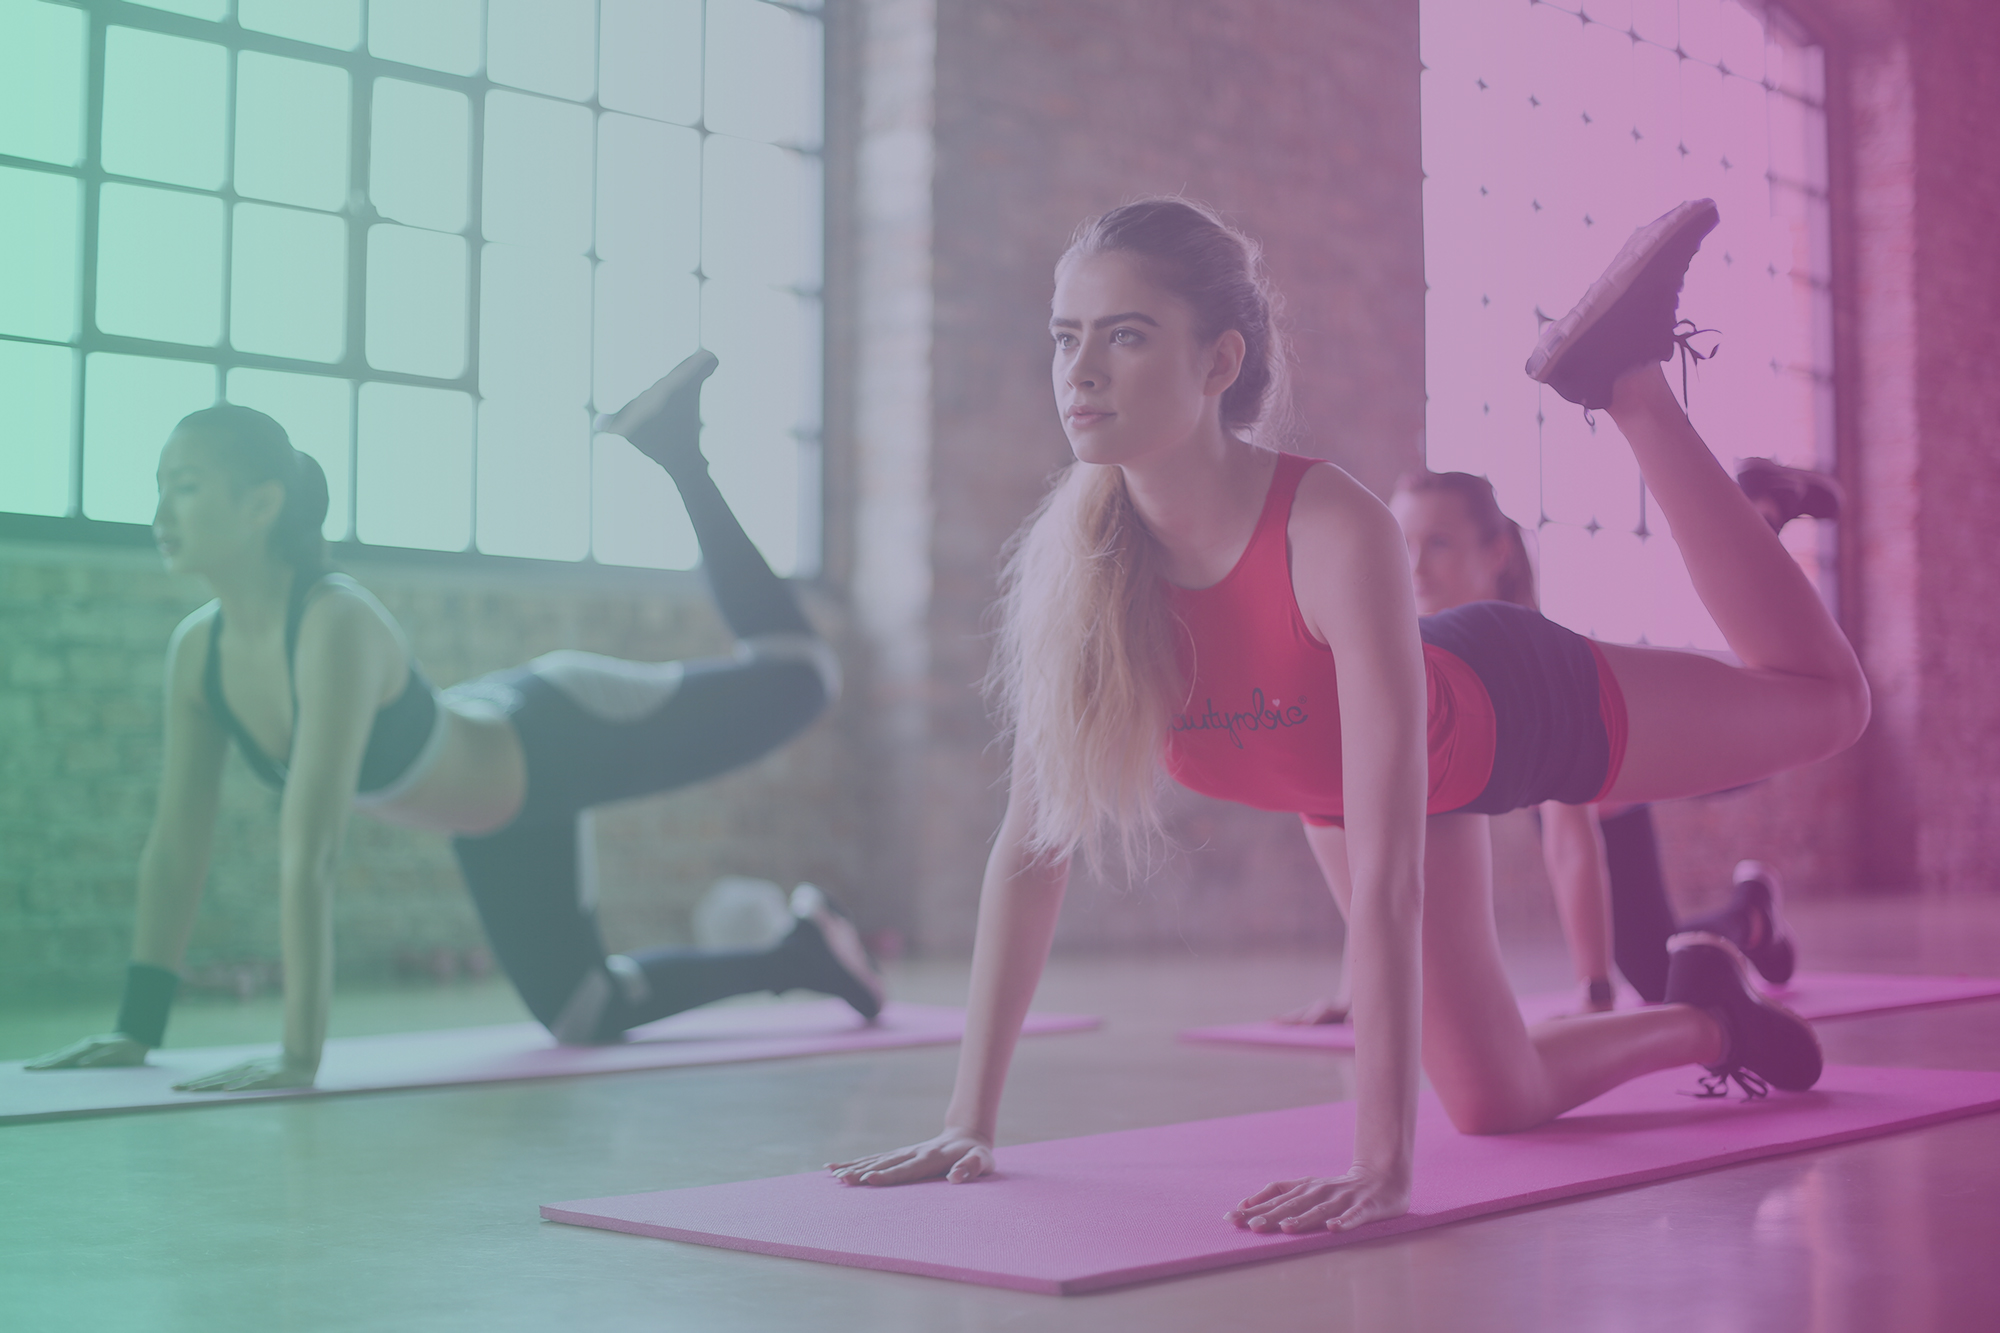 Here Are the Top Fitness Influencers to Guide Your Workout